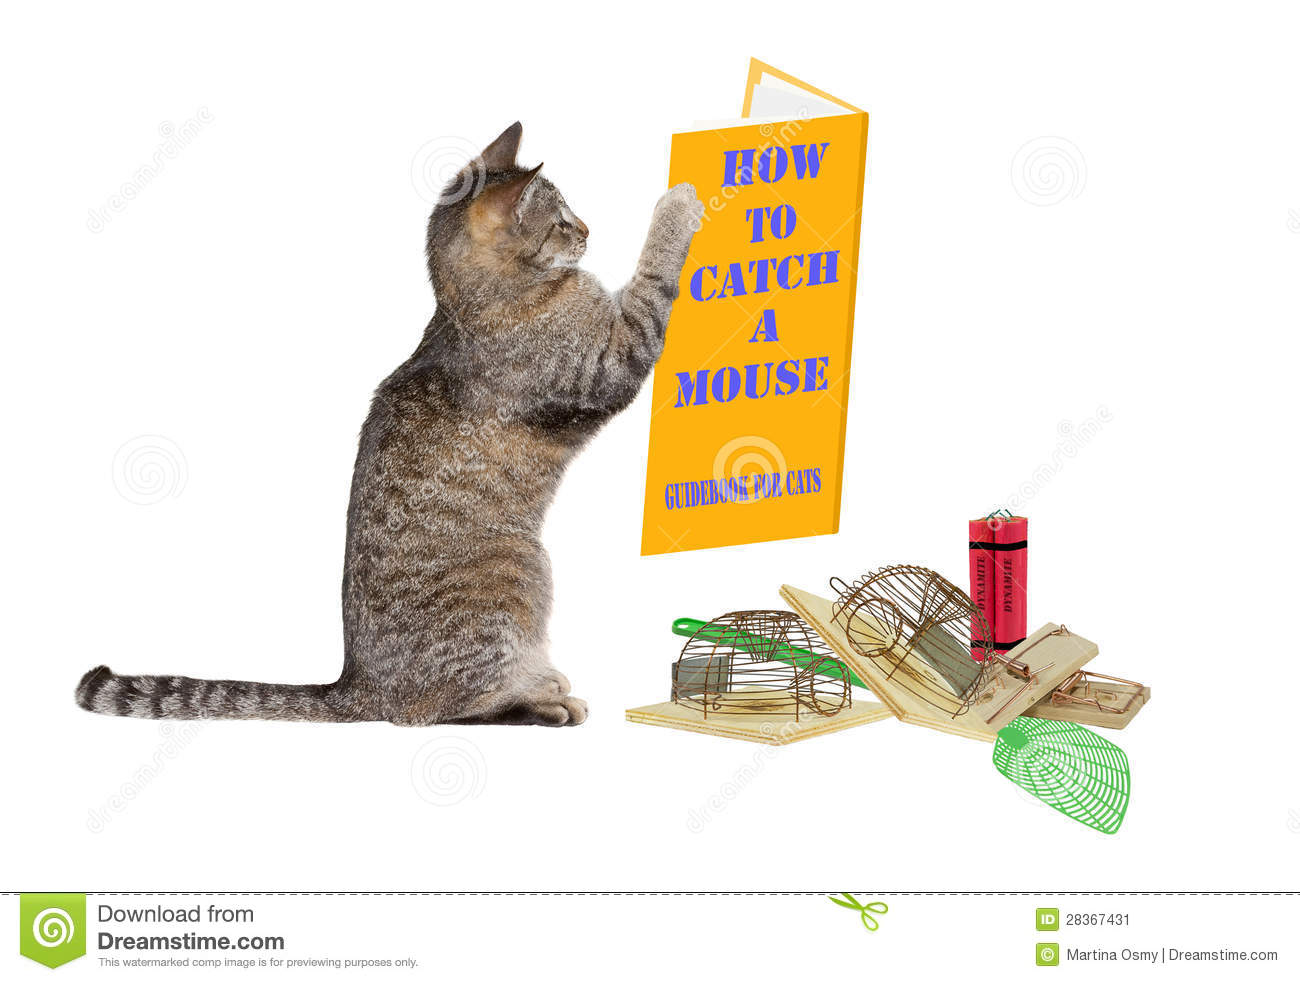 how to catch a mouse stock image image of rodent ideas 28367431. Black Bedroom Furniture Sets. Home Design Ideas